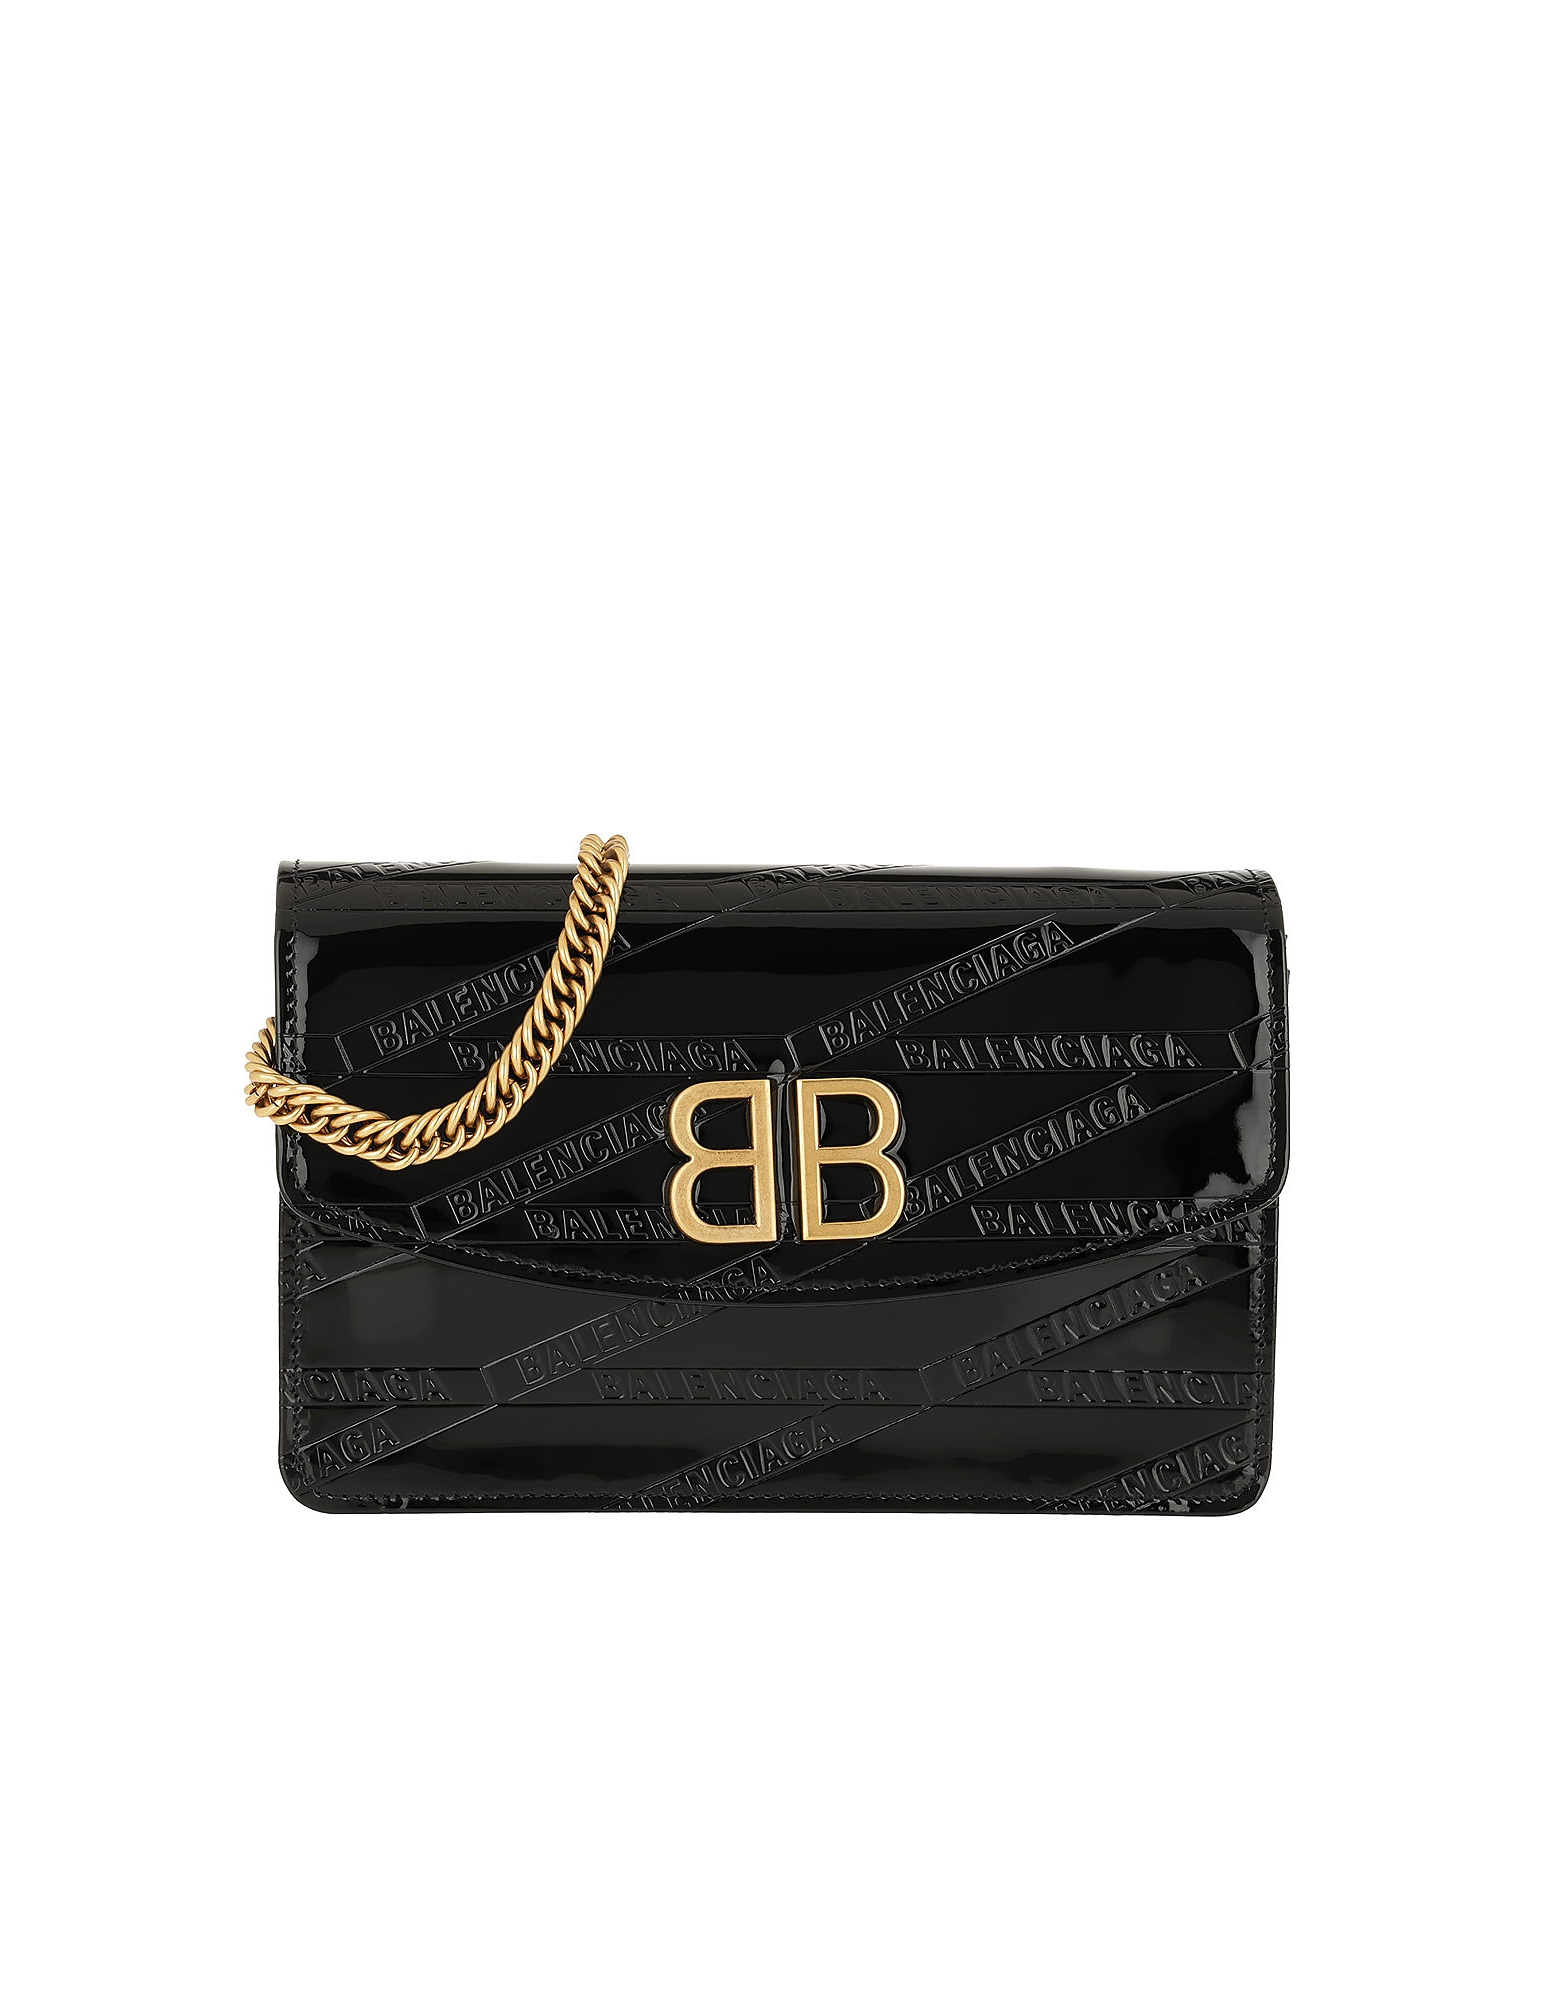 BB Shoulder Bag Leather Black